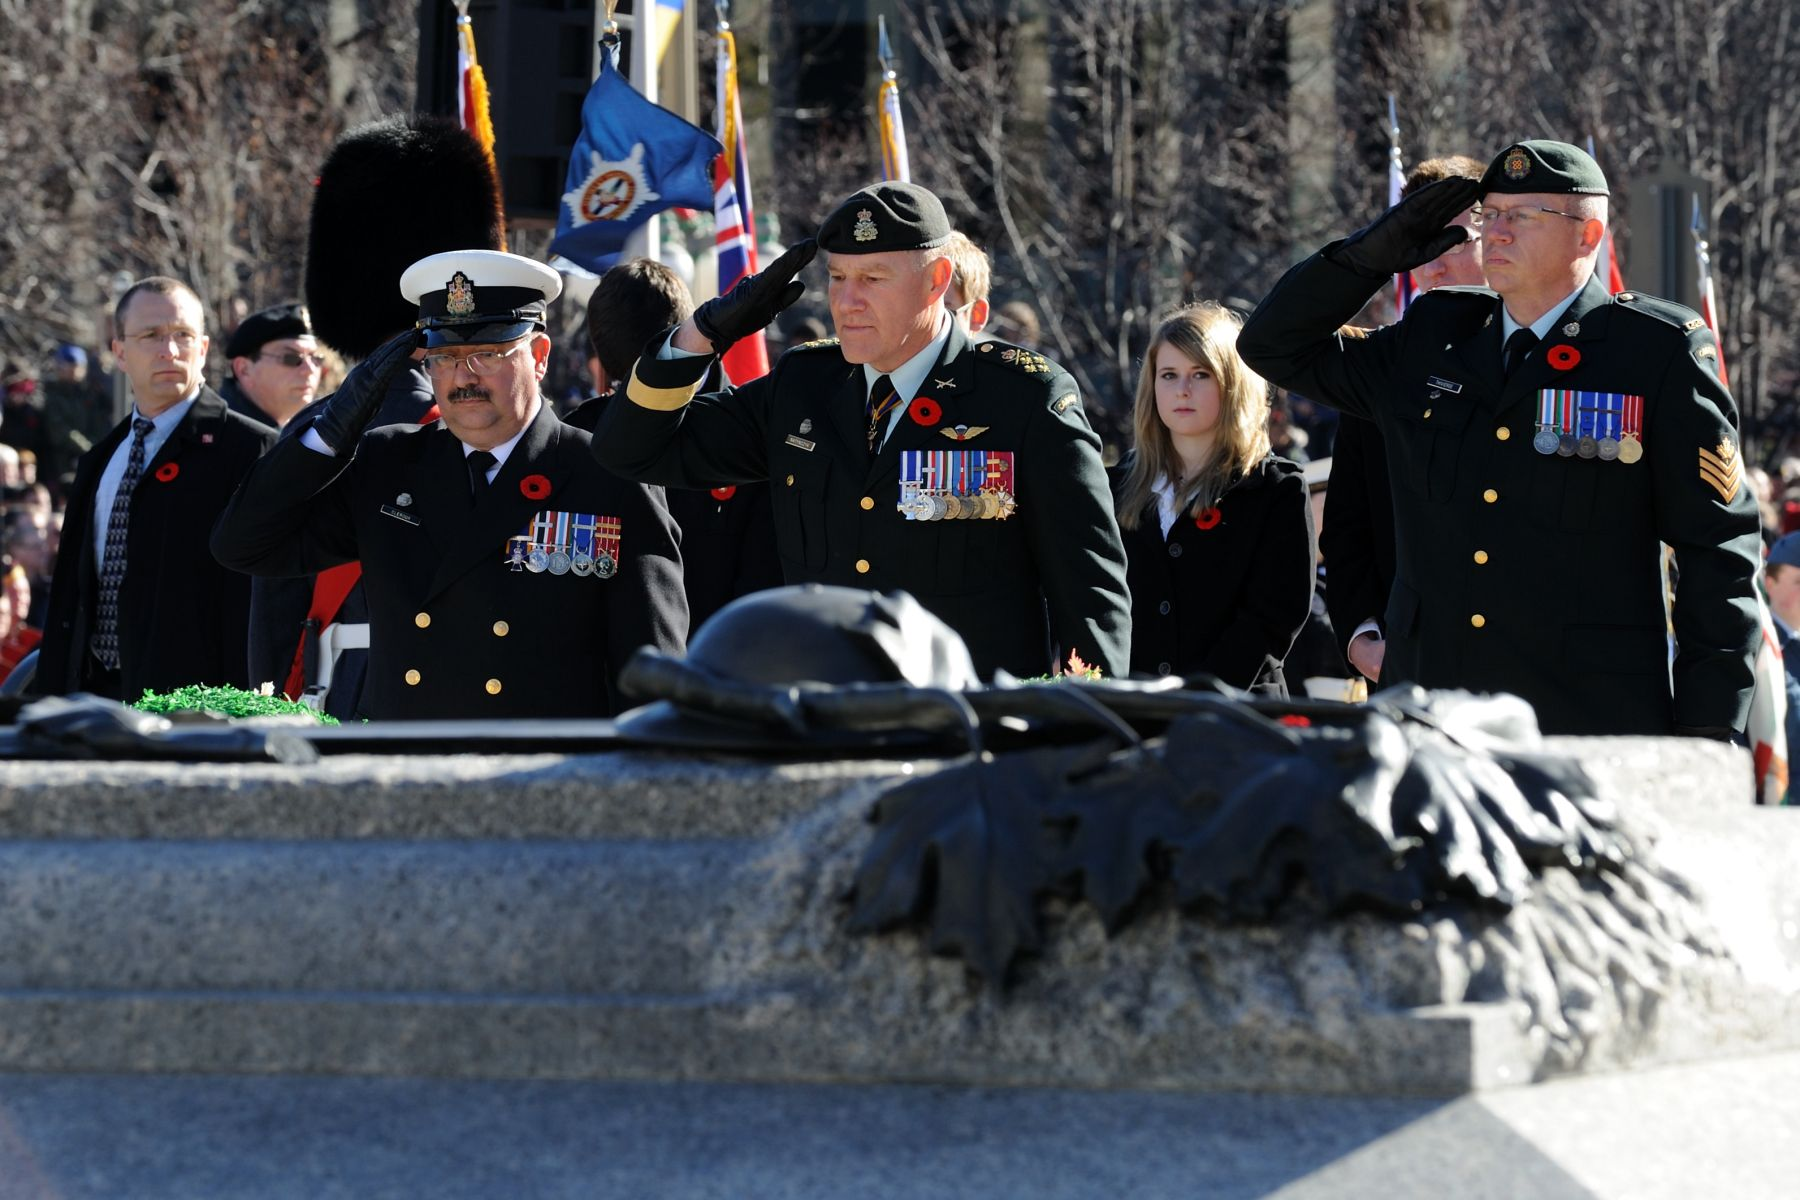 Canadian Forces Chief Petty Officer First Class Robert Cléroux and Chief of the Defence Staff General Walter Natynczyk also laid a wreath.